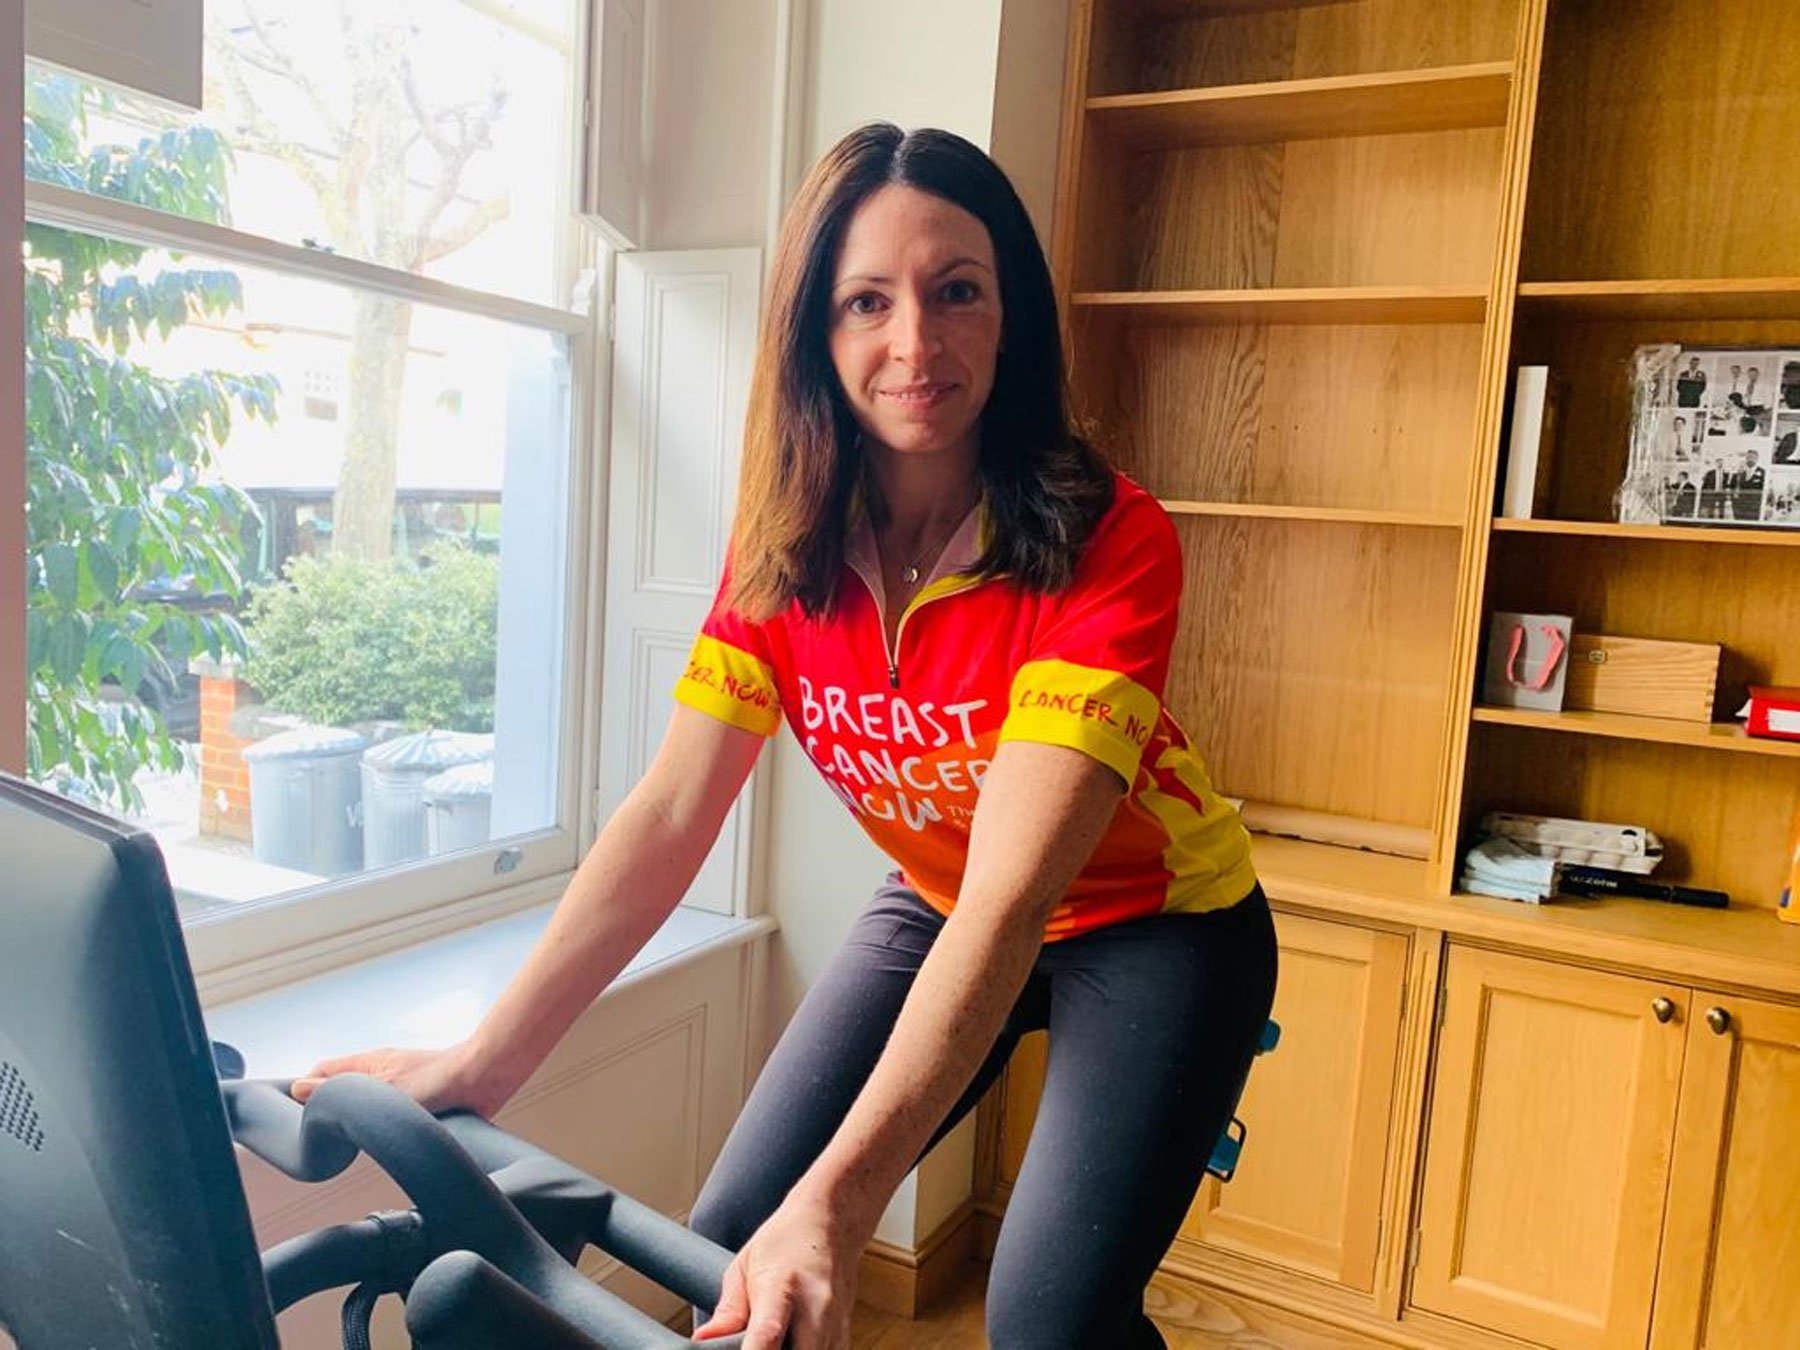 Image of a woman cycling indoors at home